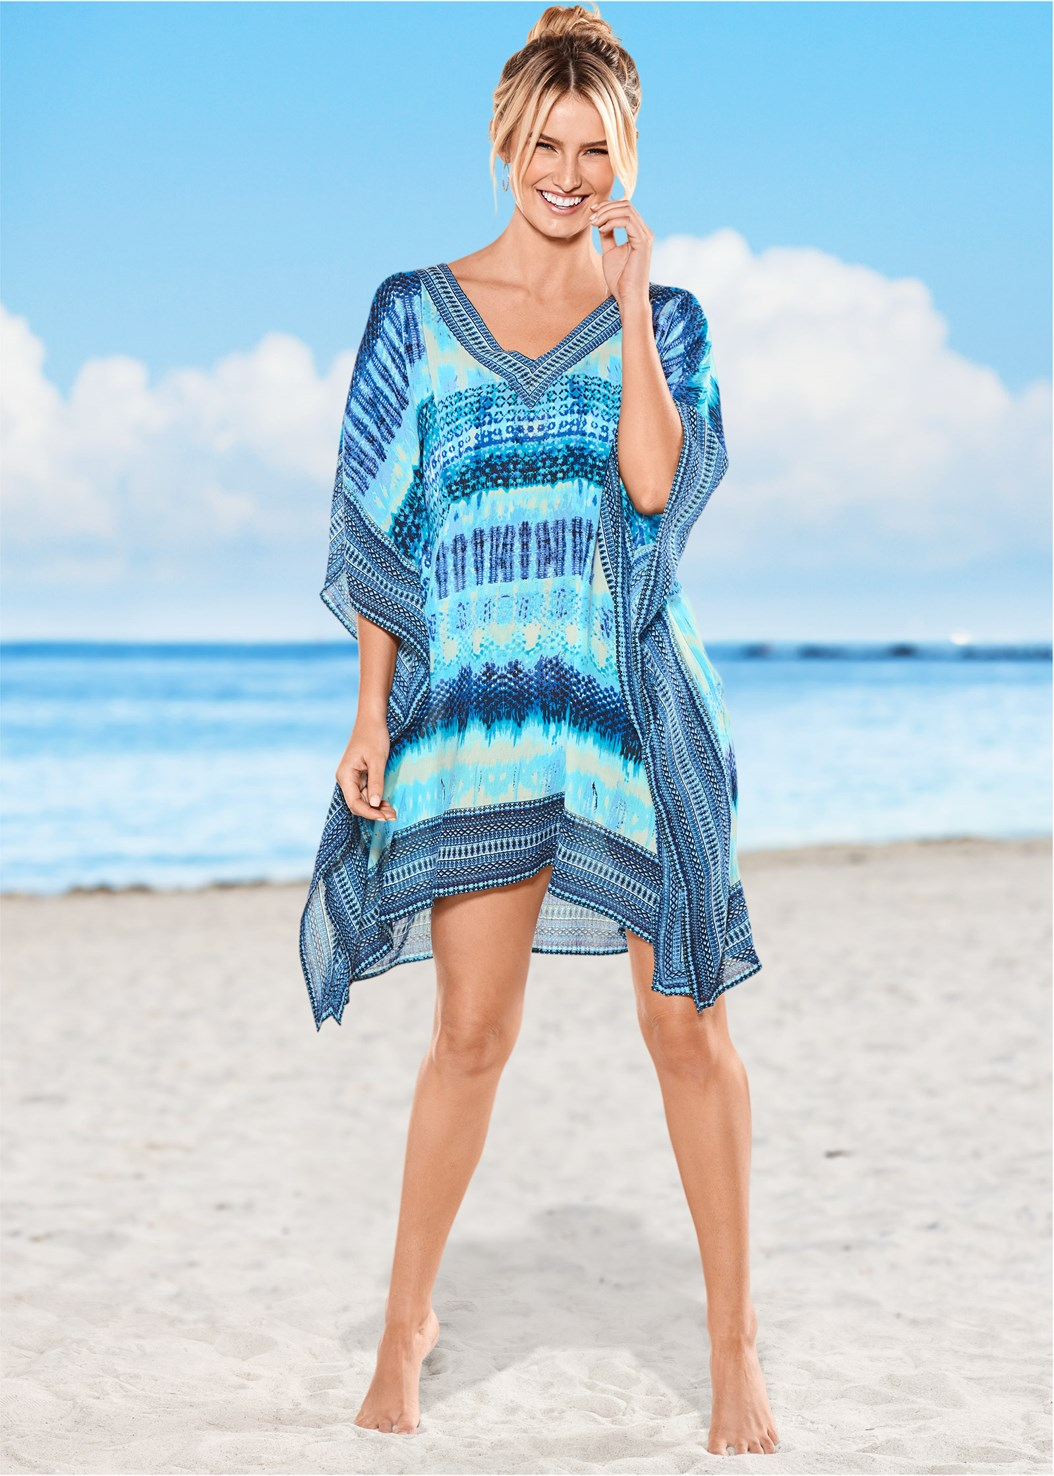 Oversized V-Neck Poncho,Marilyn Underwire Push Up Halter Top,Scoop Front Bikini Bottom